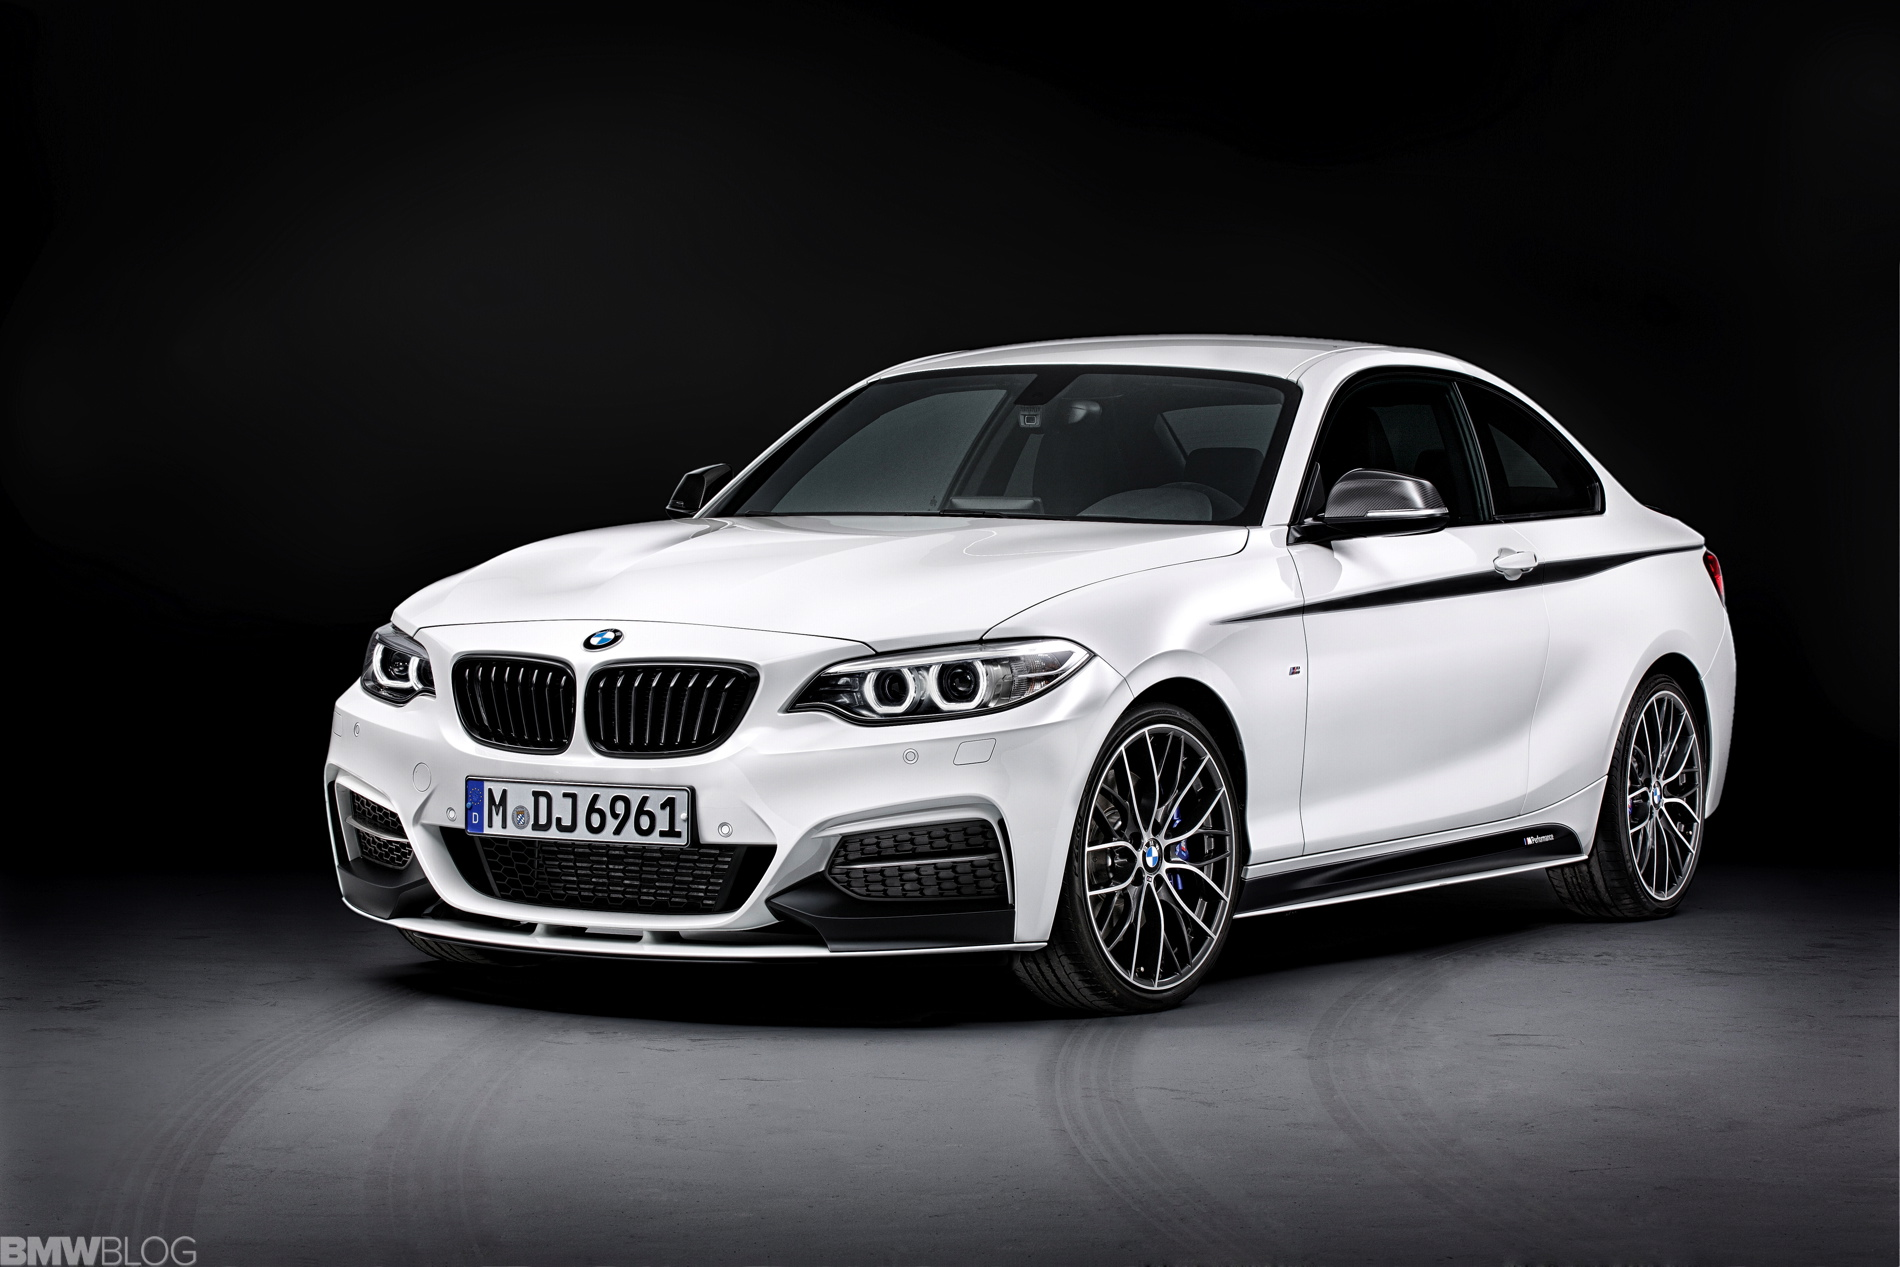 Bmw 2 Series Coupe With M Performance Parts